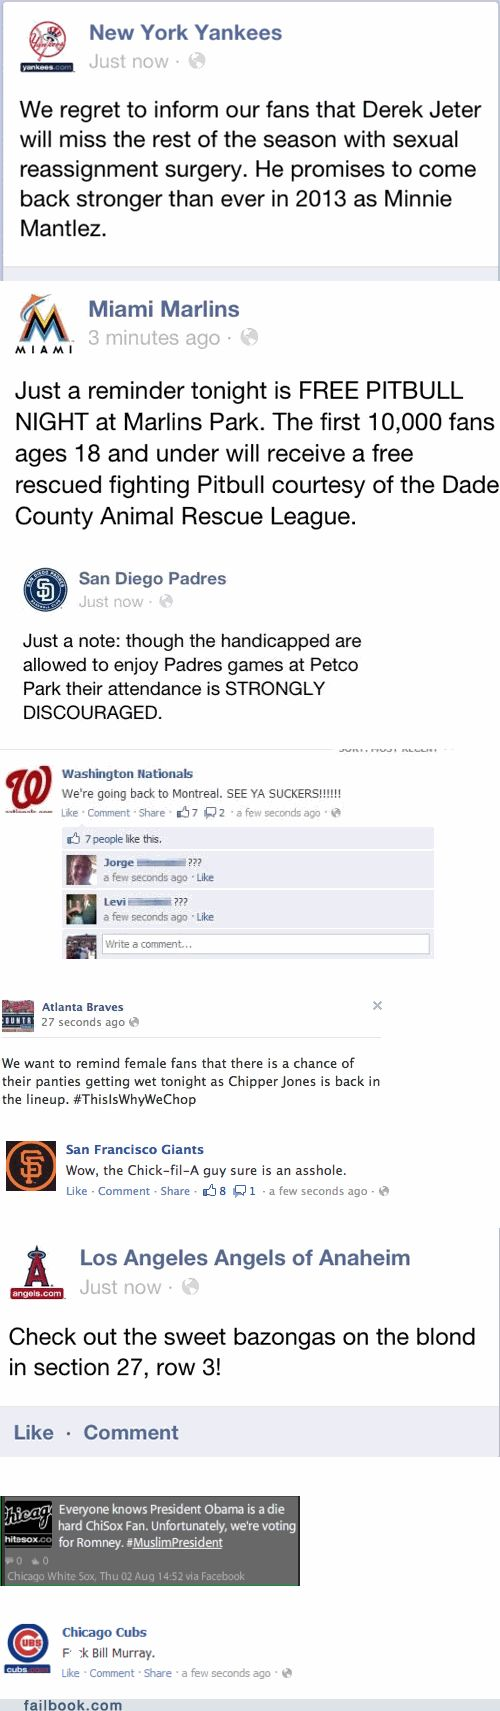 In Which Nine Major League Baseball Teams Had Their Facebook and Twitter Hacked